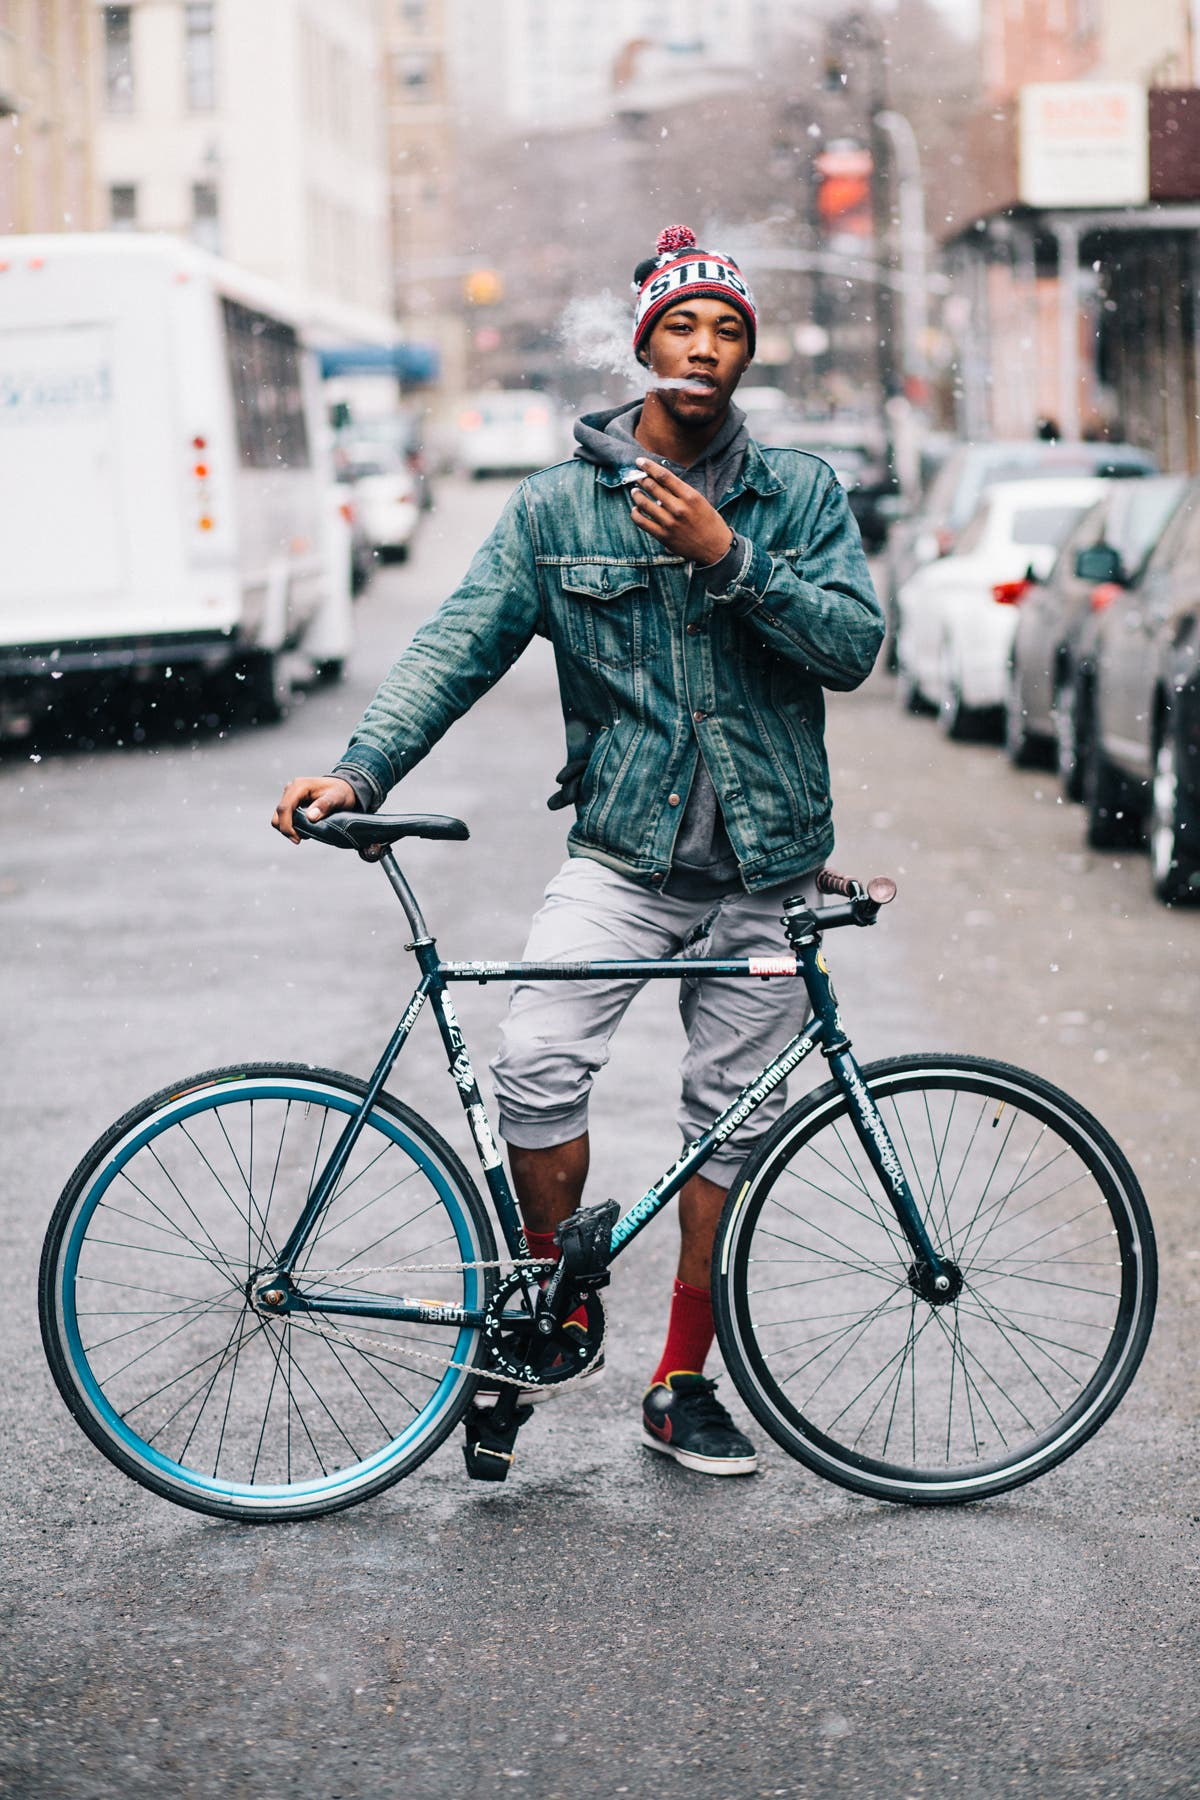 Preferred Mode Photos Of New York City S Bike Culture At